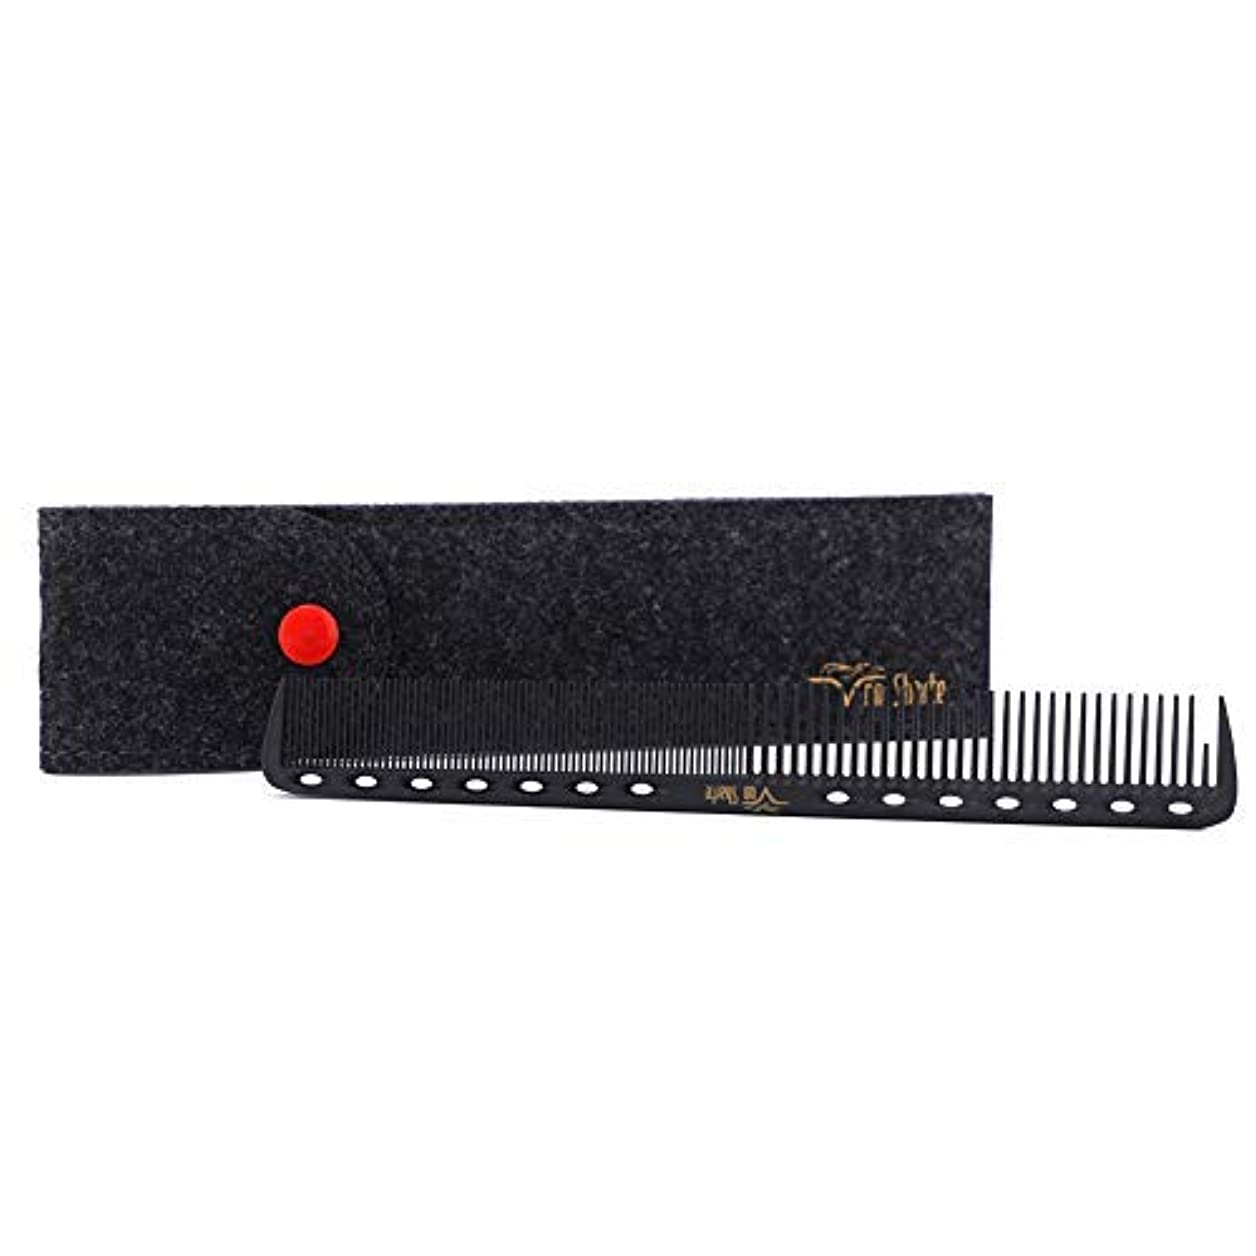 地平線限られた彼女自身Barber Comb,Hair Cutting Combs Carbon Fiber Salon Hairdressing Comb 100% Anti Static 230℃ Heat Resistant with Smooth Round Teeth Bristle for Hair Partition/Remove Knots/Hair Cutting/Dying/Styling [並行輸入品]